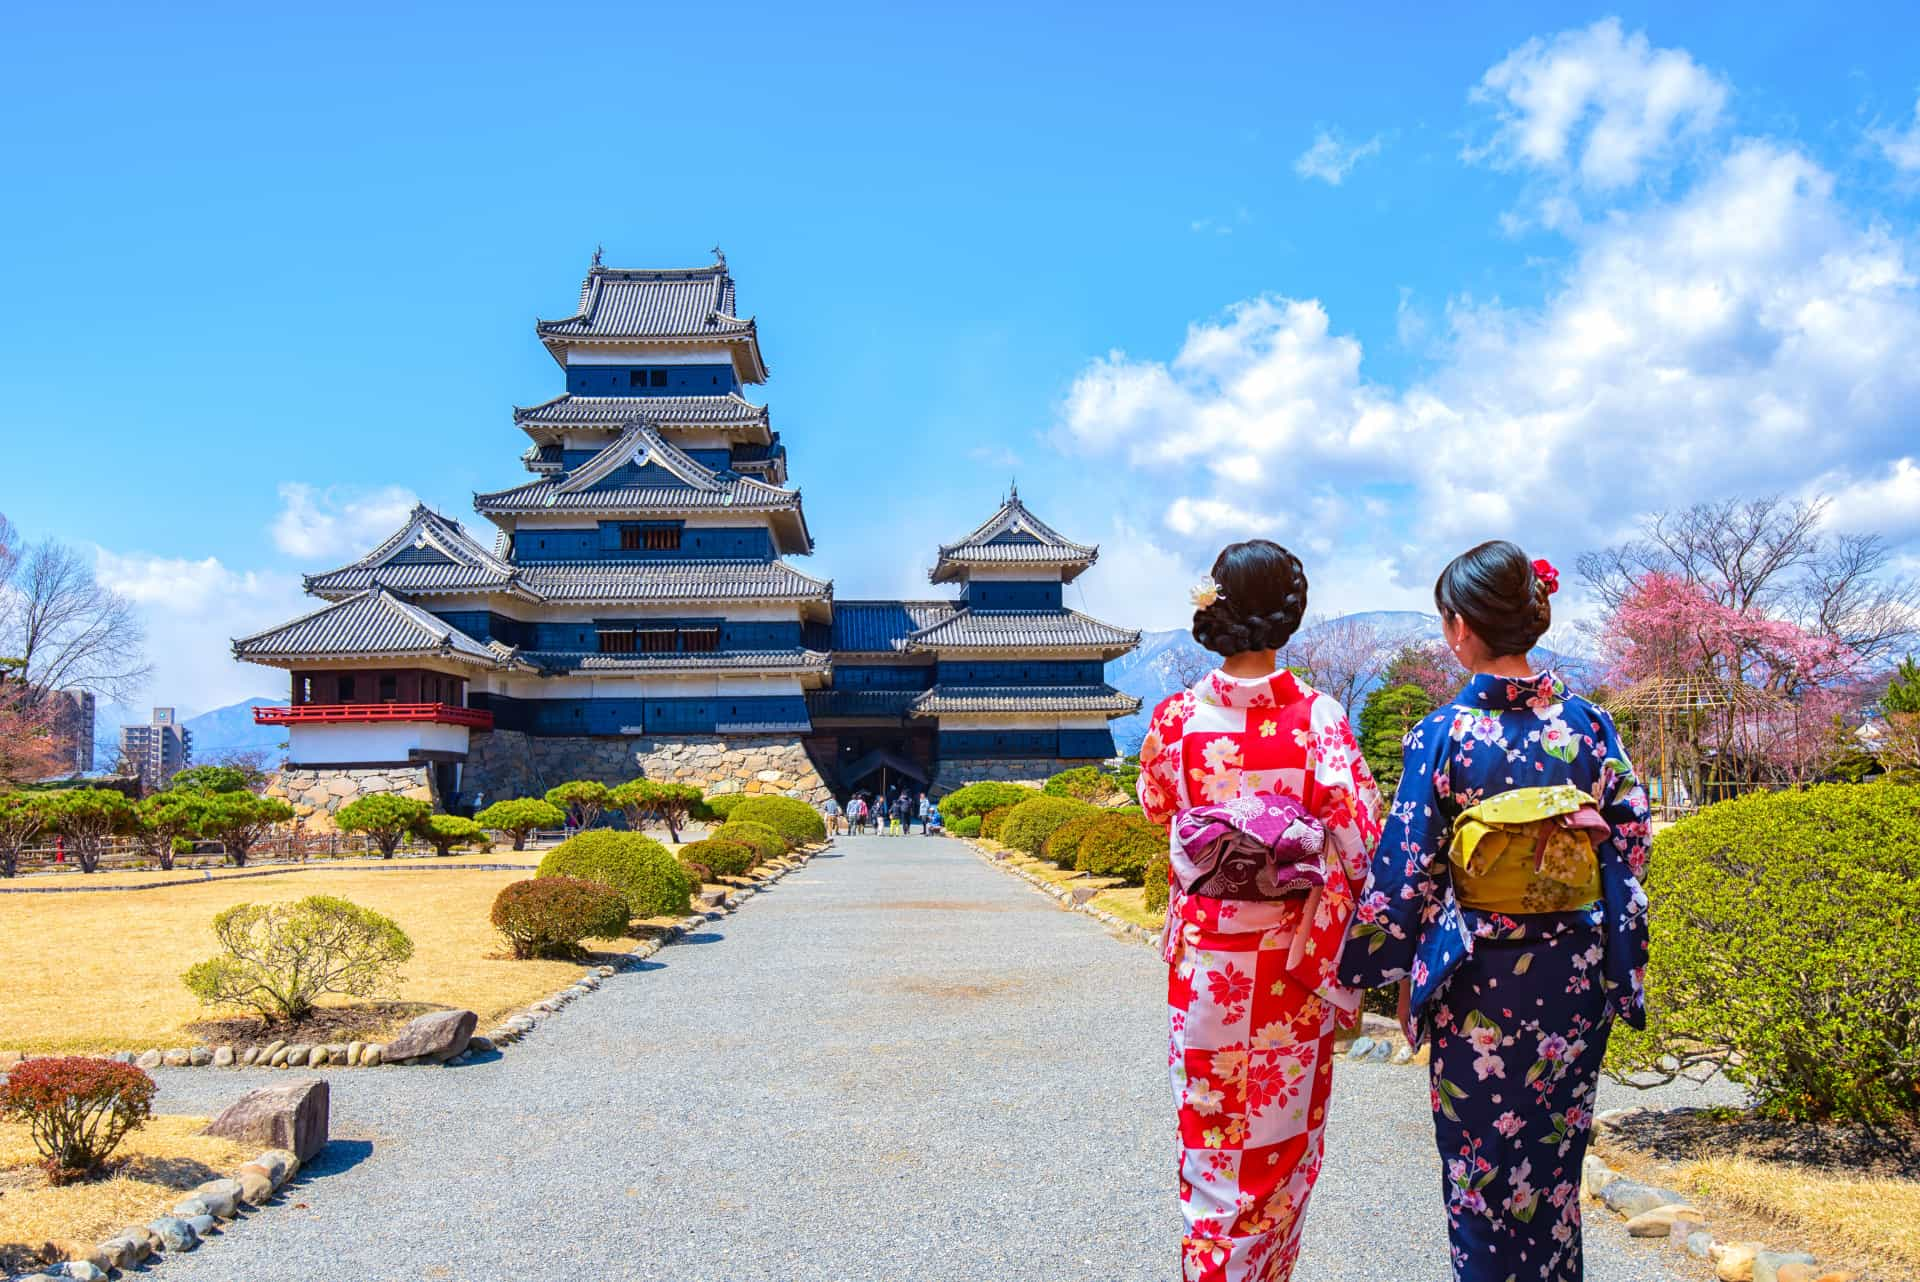 An historic journey through Japan's most incredible castles